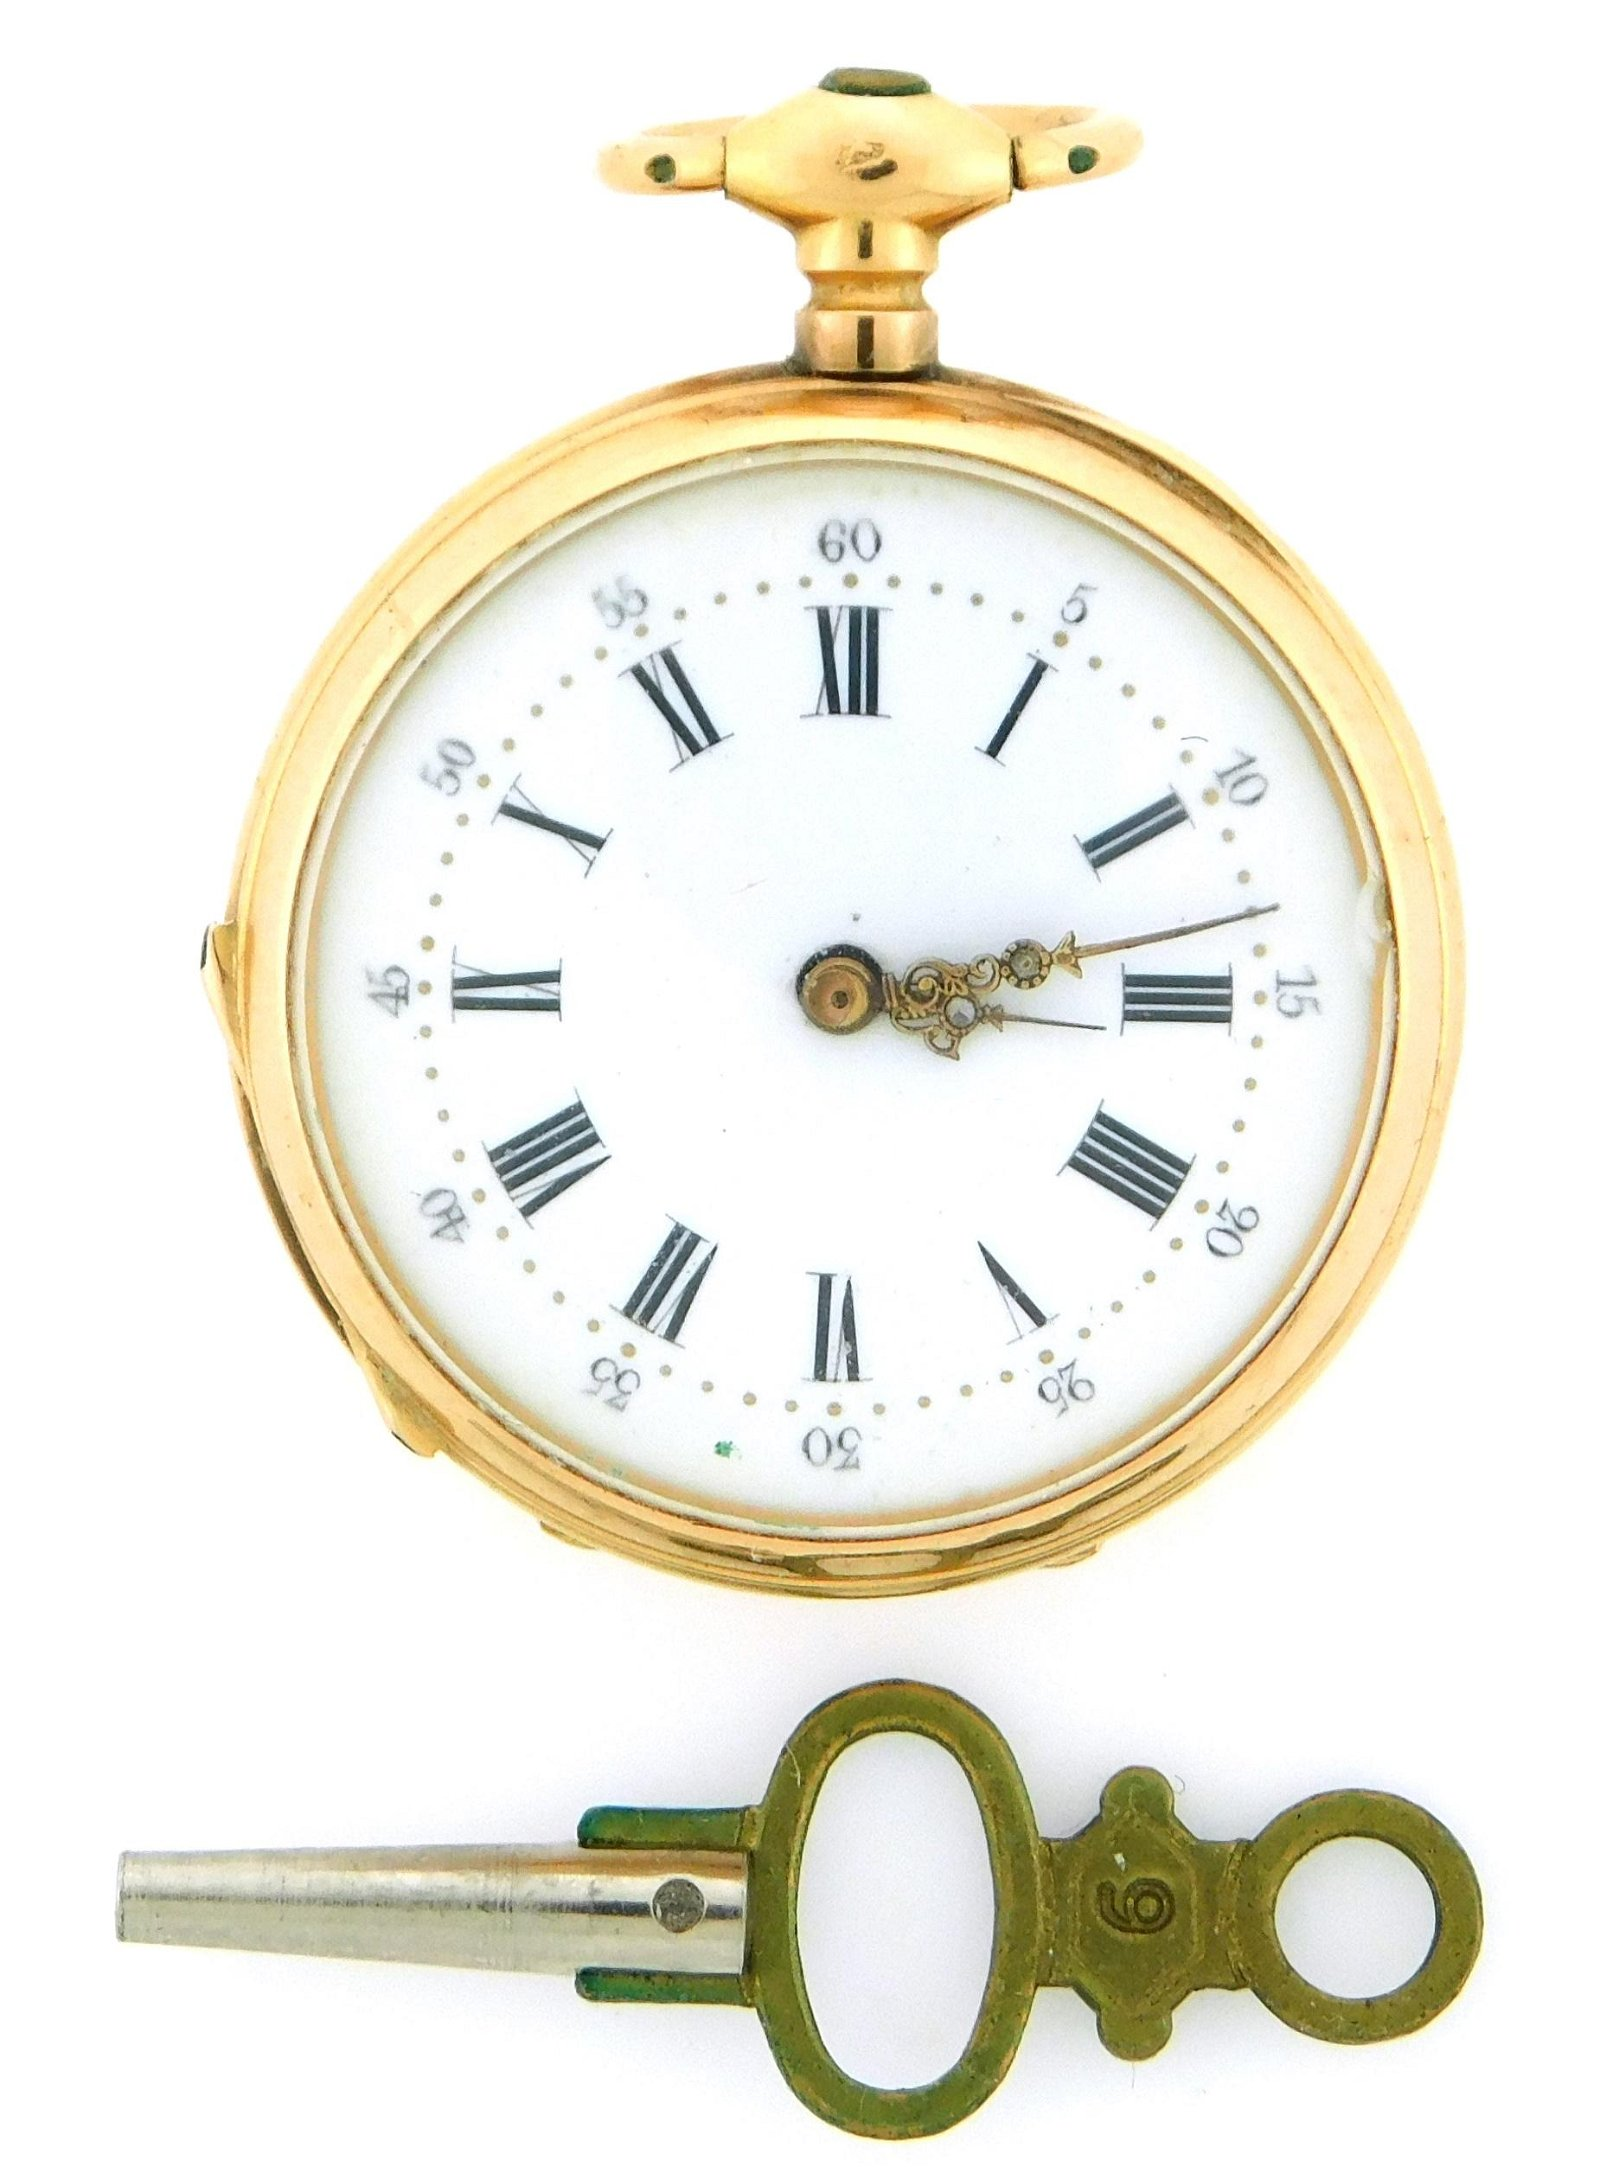 JEWELRY: 18K Pendant Watch with Enamel, open face